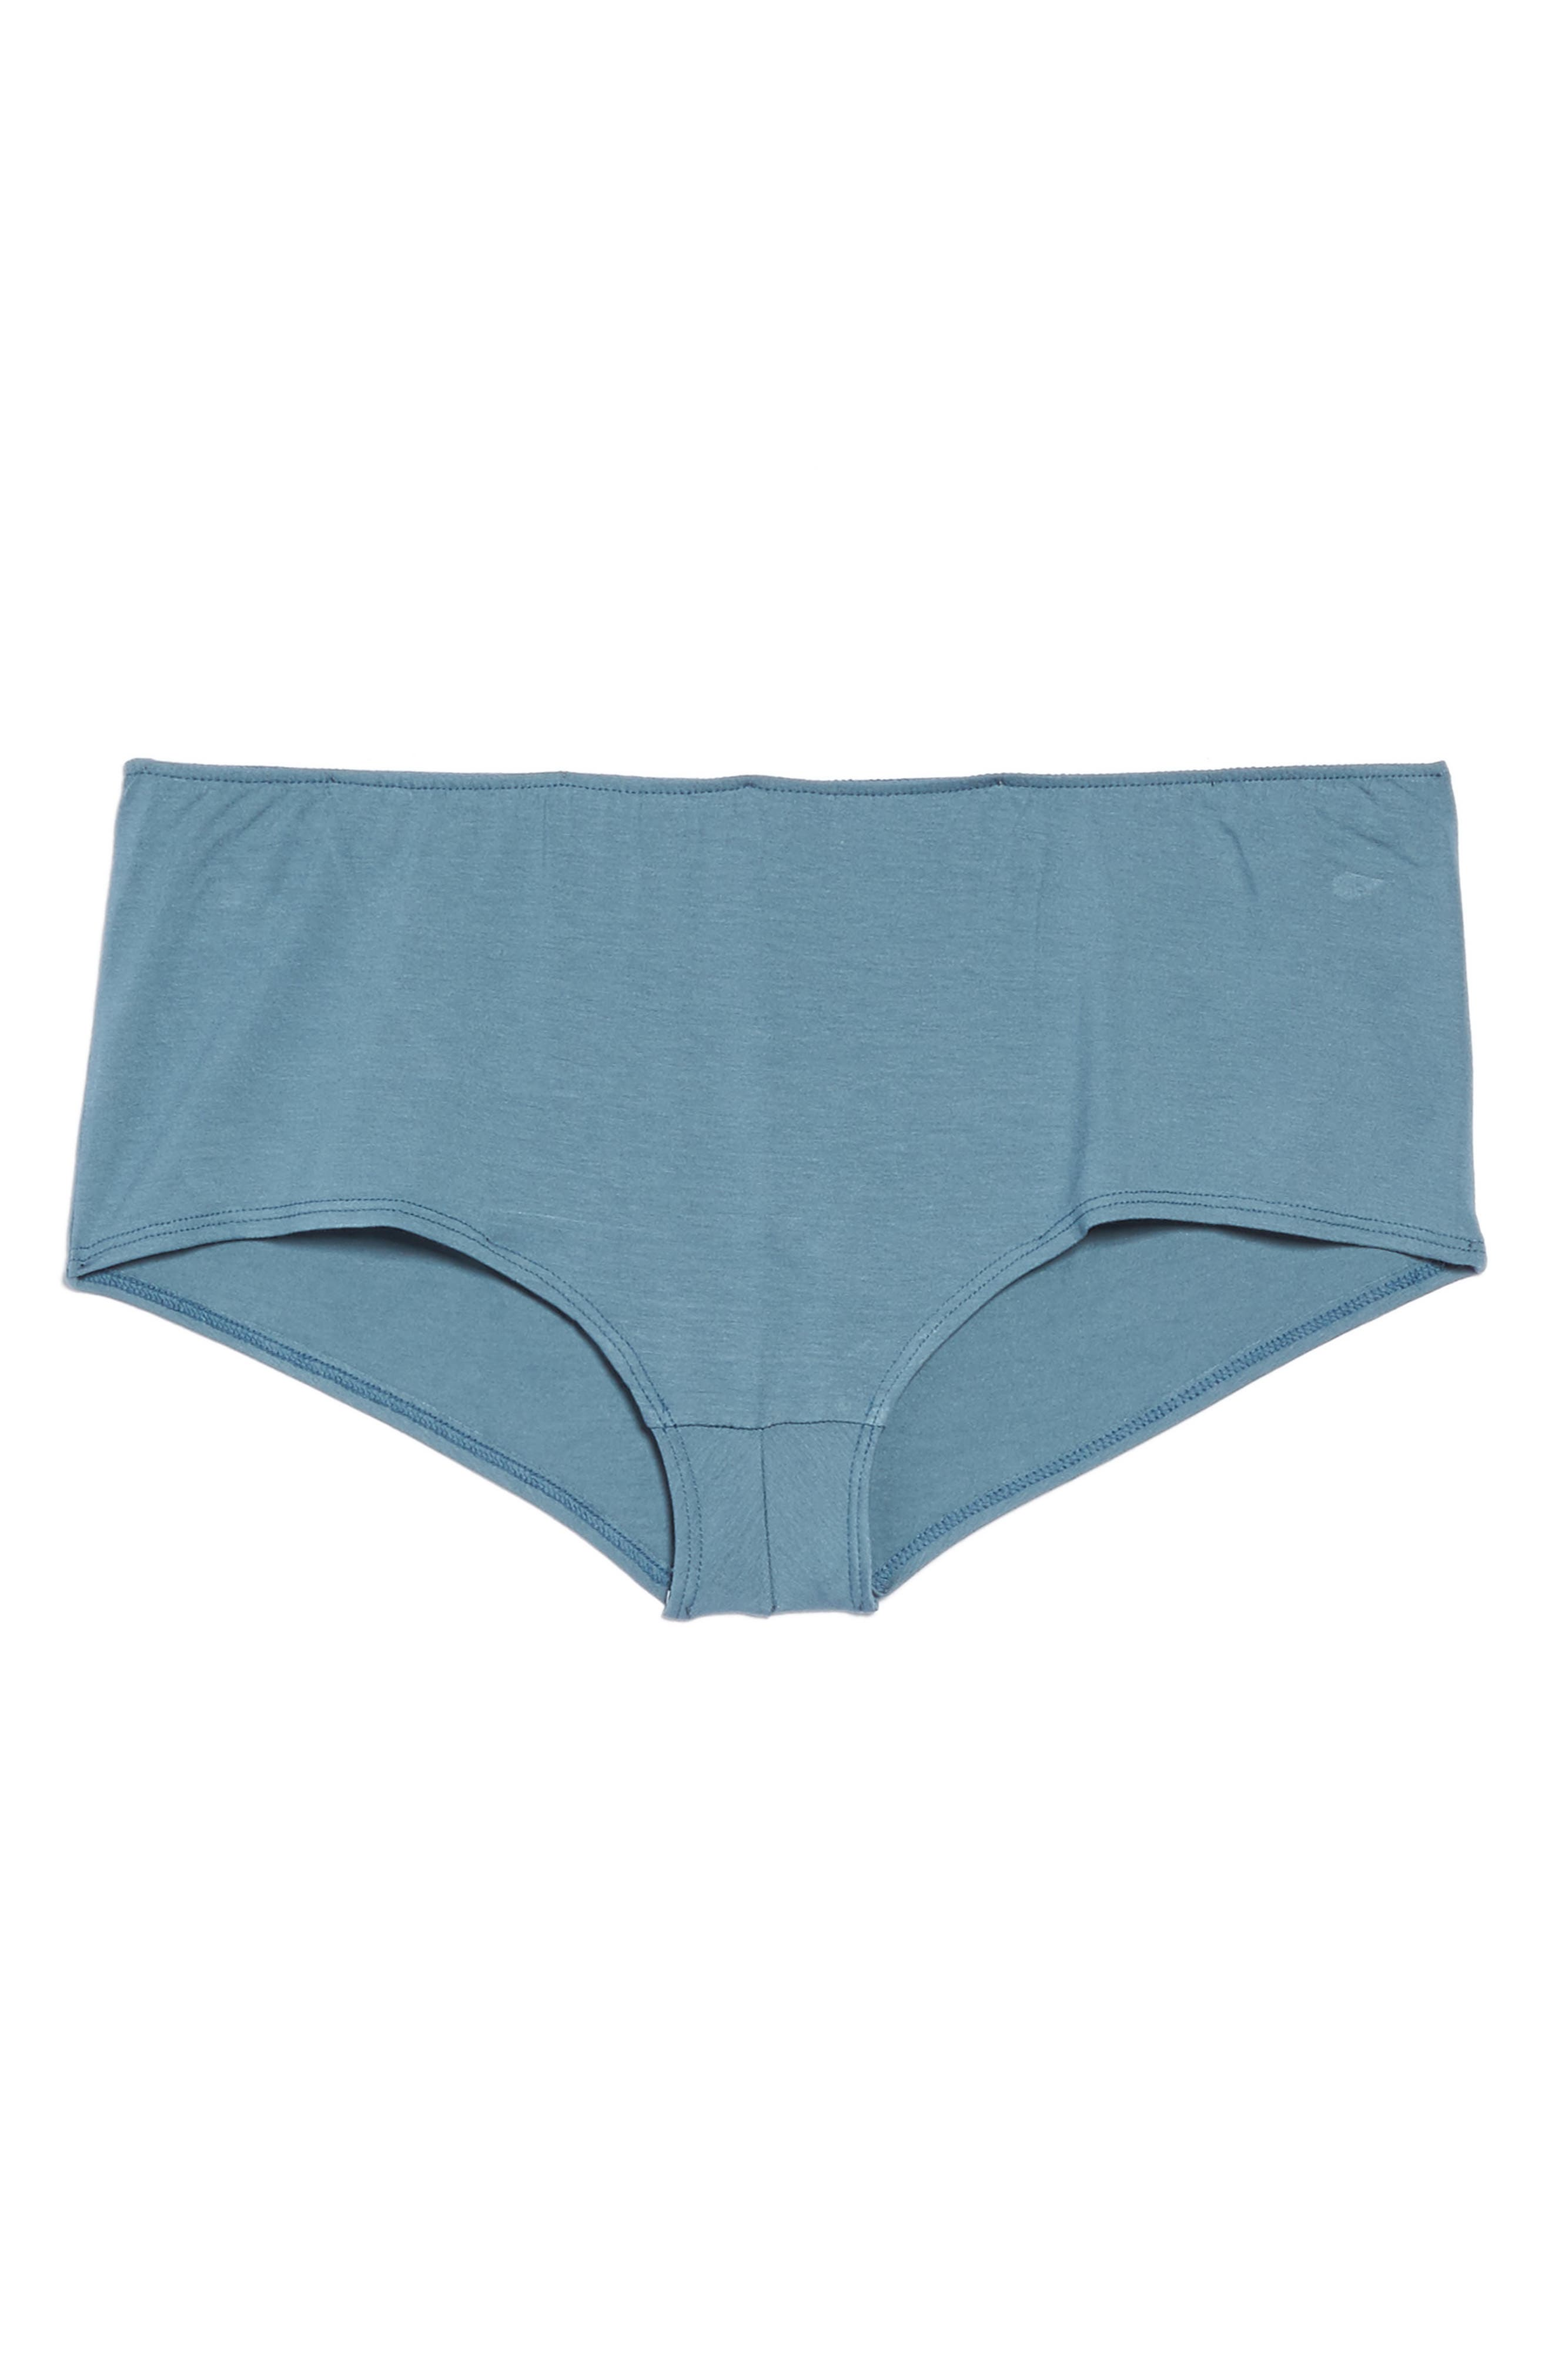 So Fine Ruched Hipster Briefs,                             Alternate thumbnail 4, color,                             Petrol